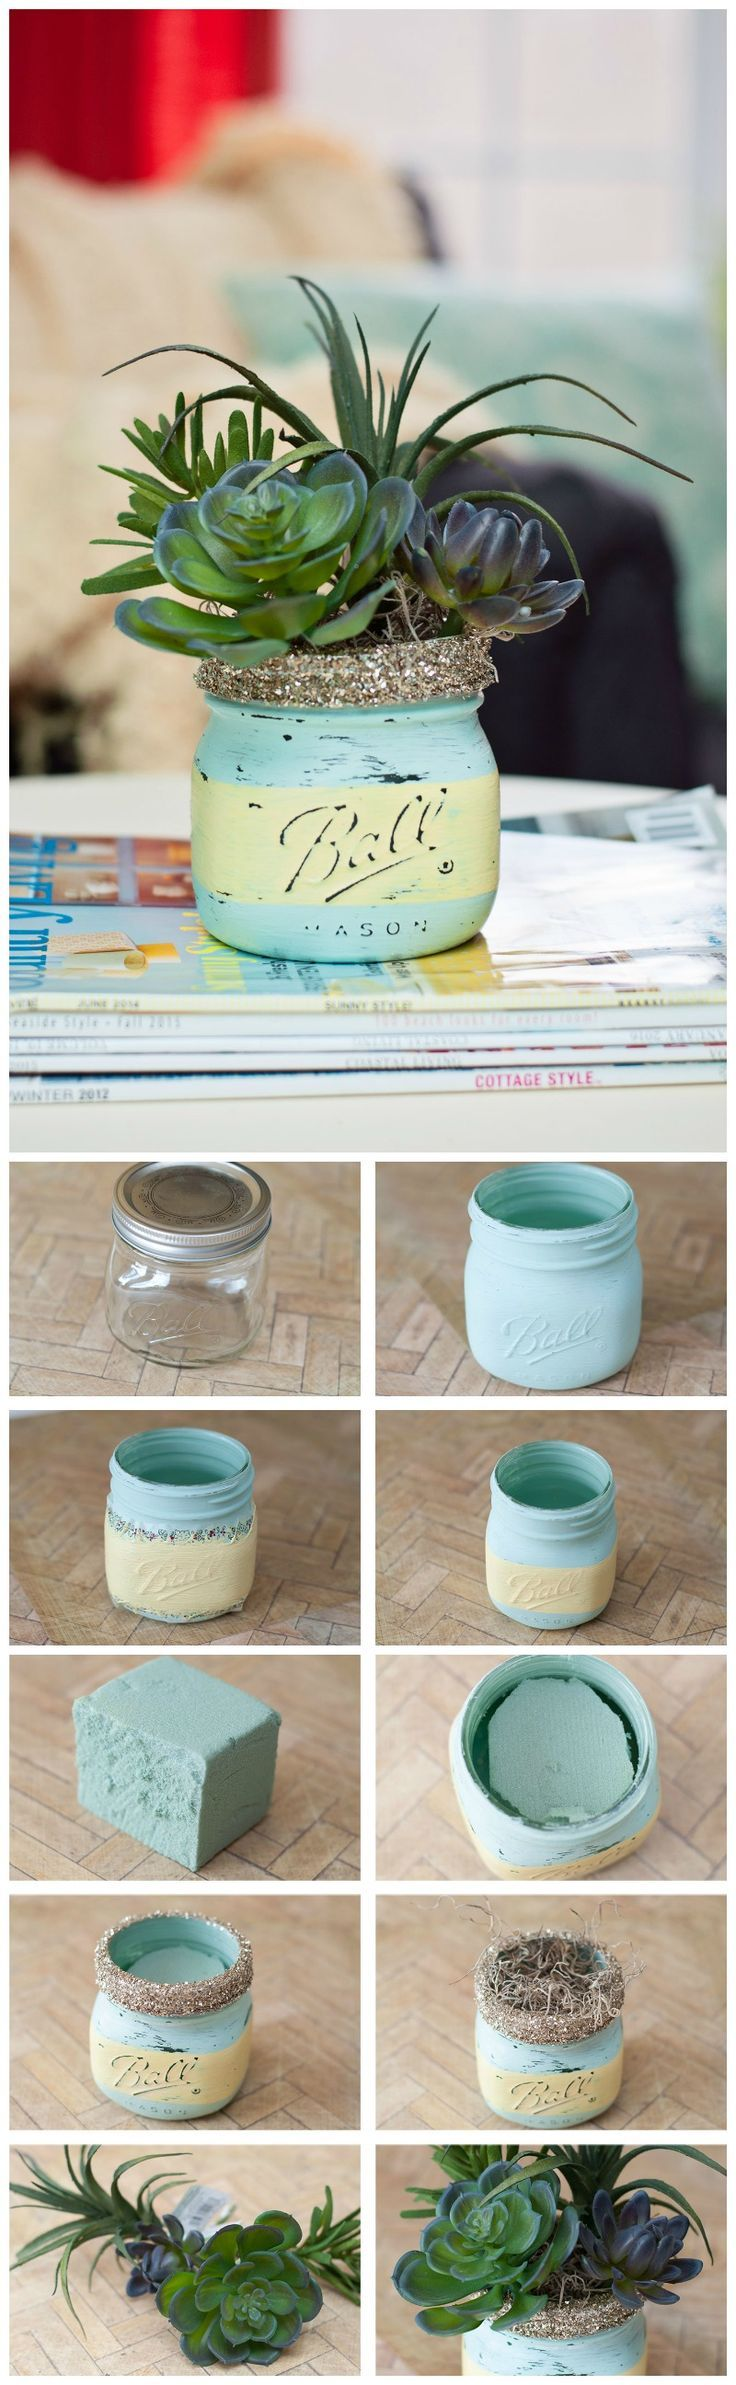 best containers images on pinterest mason jars decorated jars